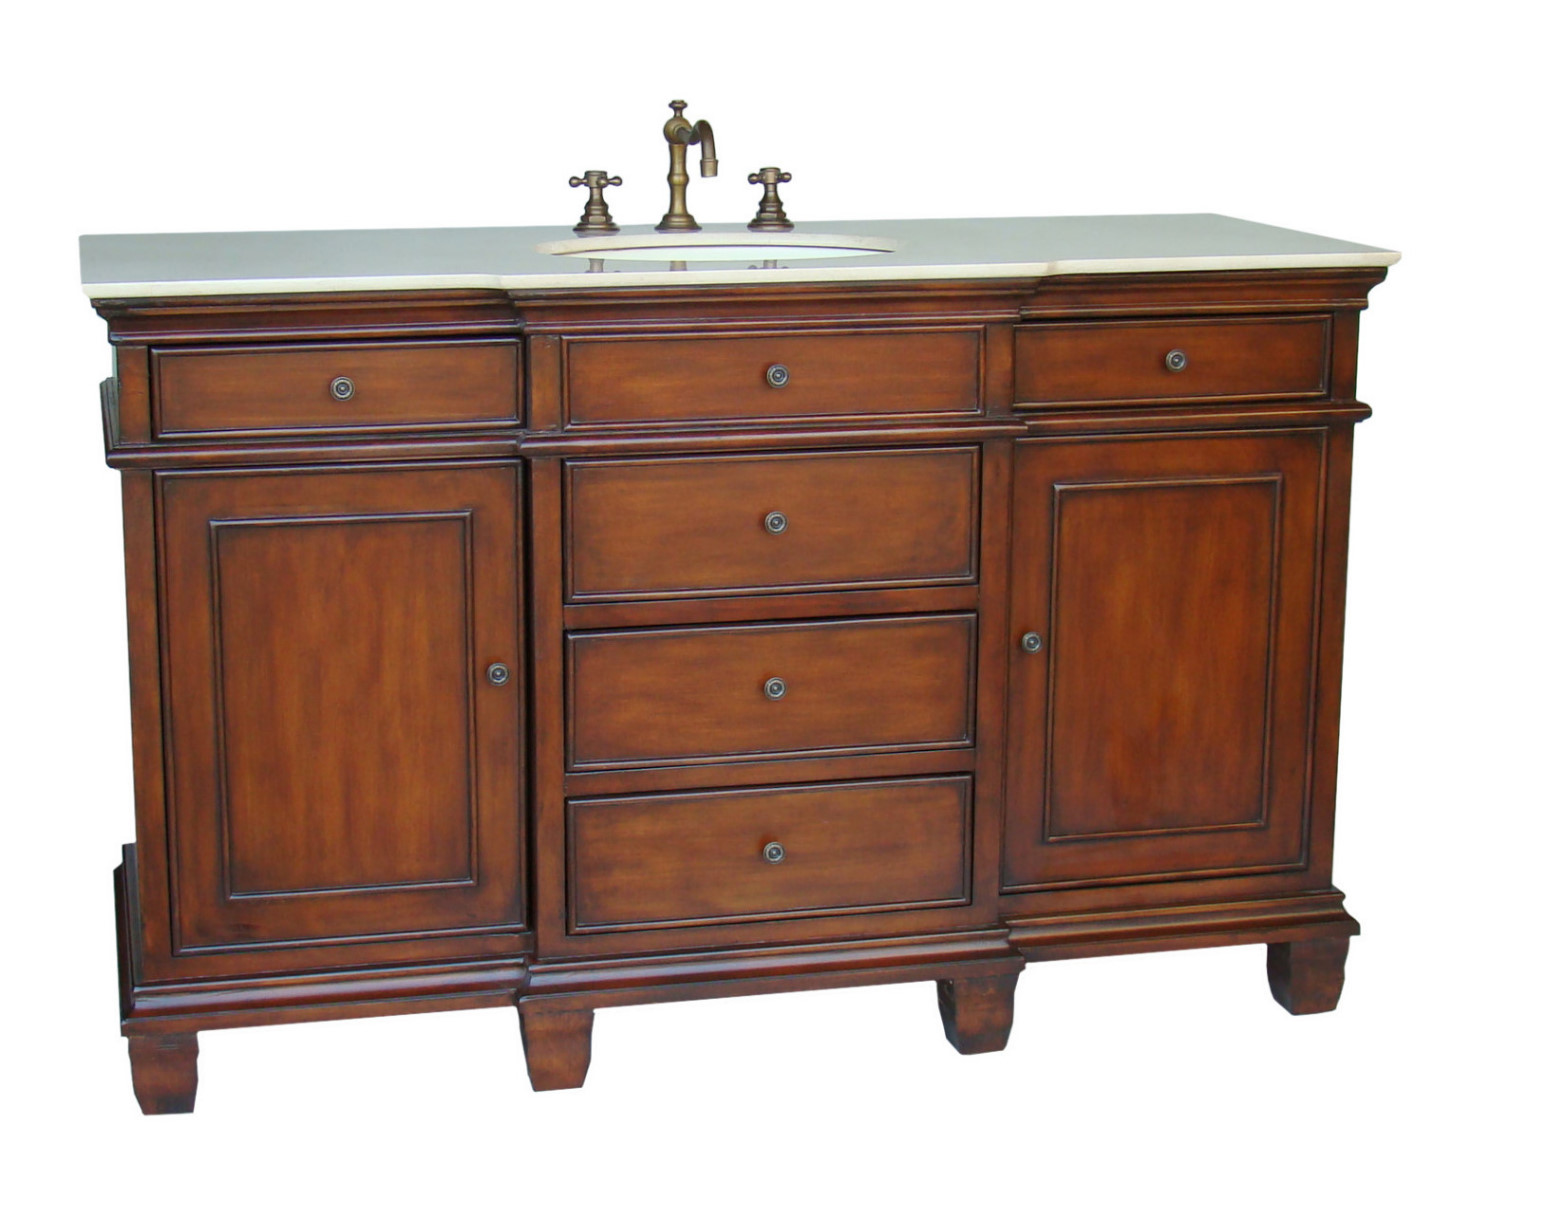 56 inch dunsmore vanity single sink vanity chestnut for Looking for bathroom vanities